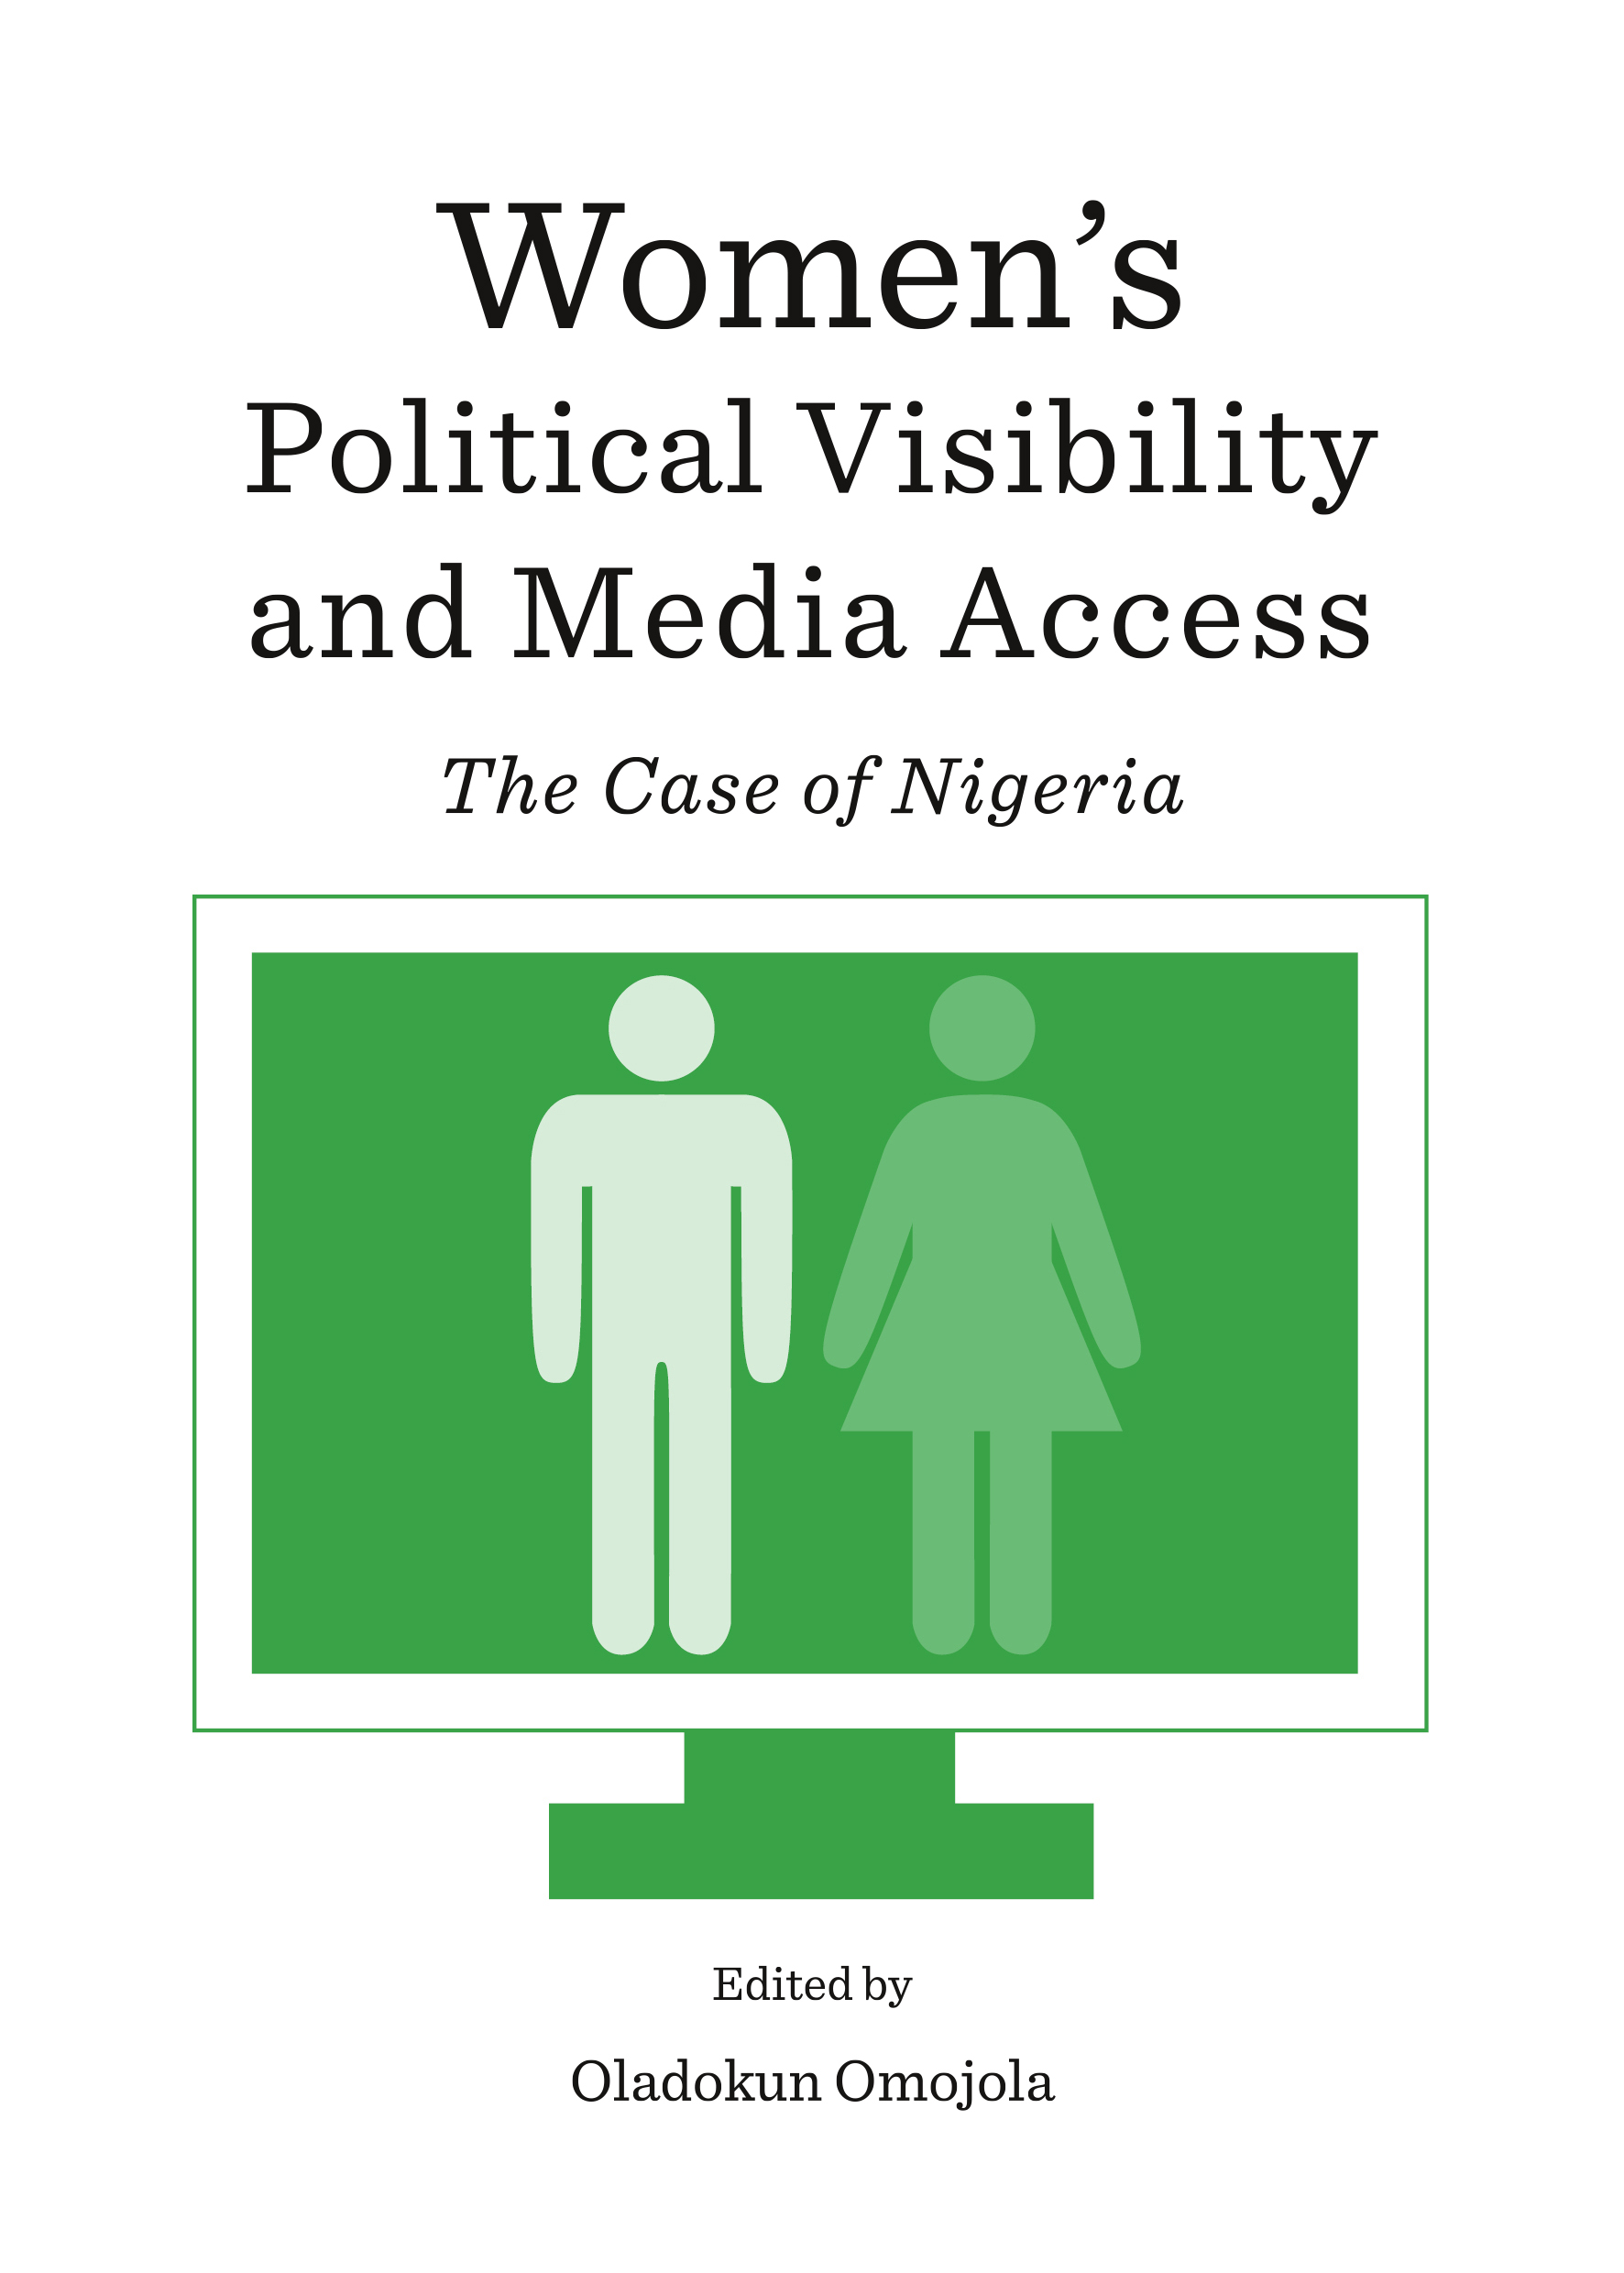 Women's Political Visibility and Media Access: The Case of Nigeria